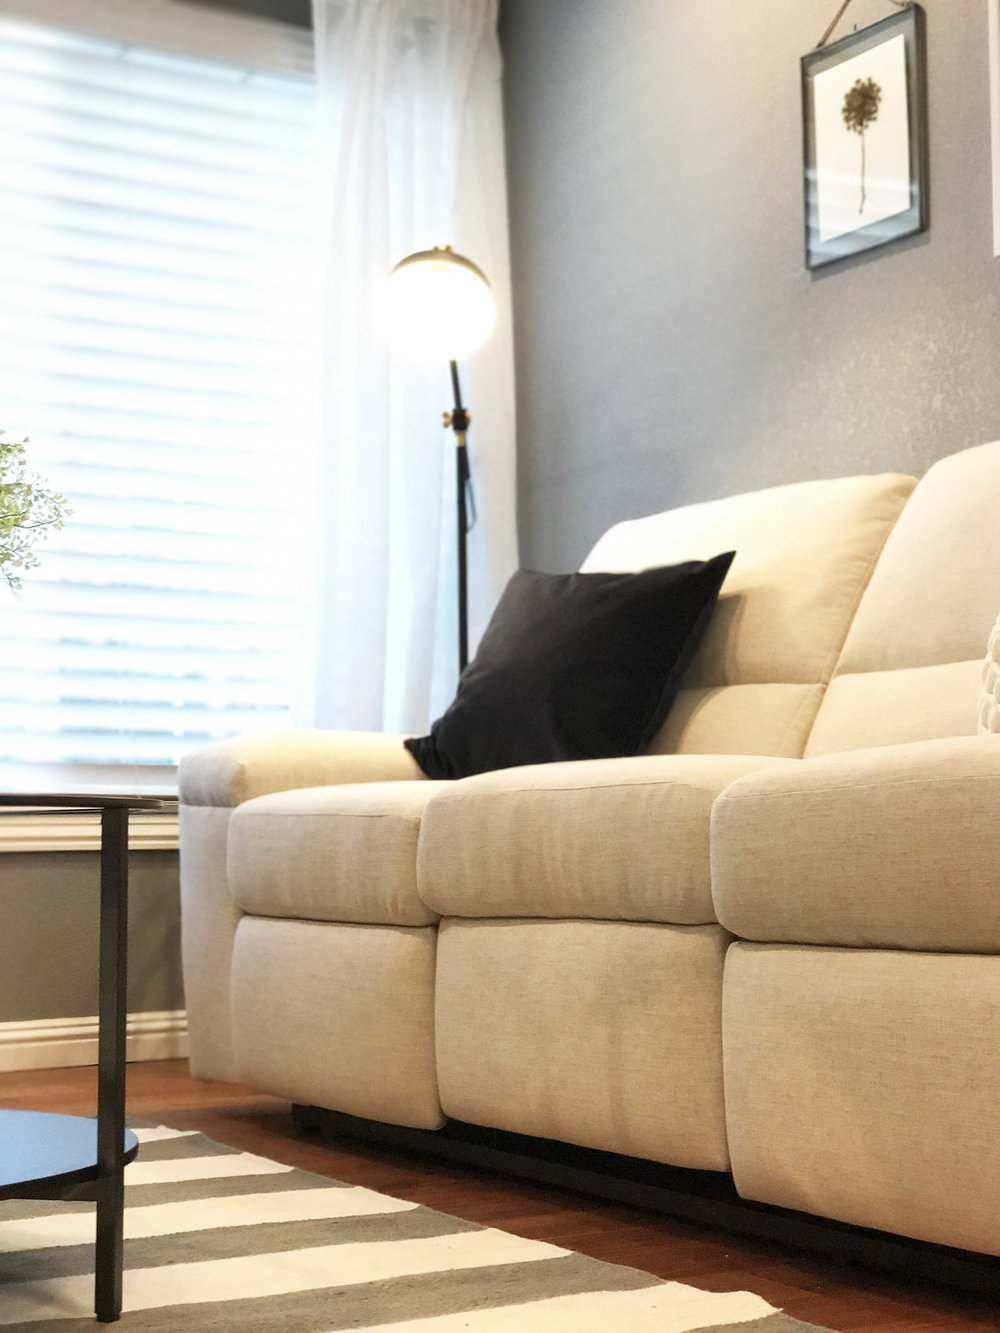 The recliner sofa was originally designed very different, but our team was able to redesign the shape of the sofa and brightened it up with a durable linen fabric.